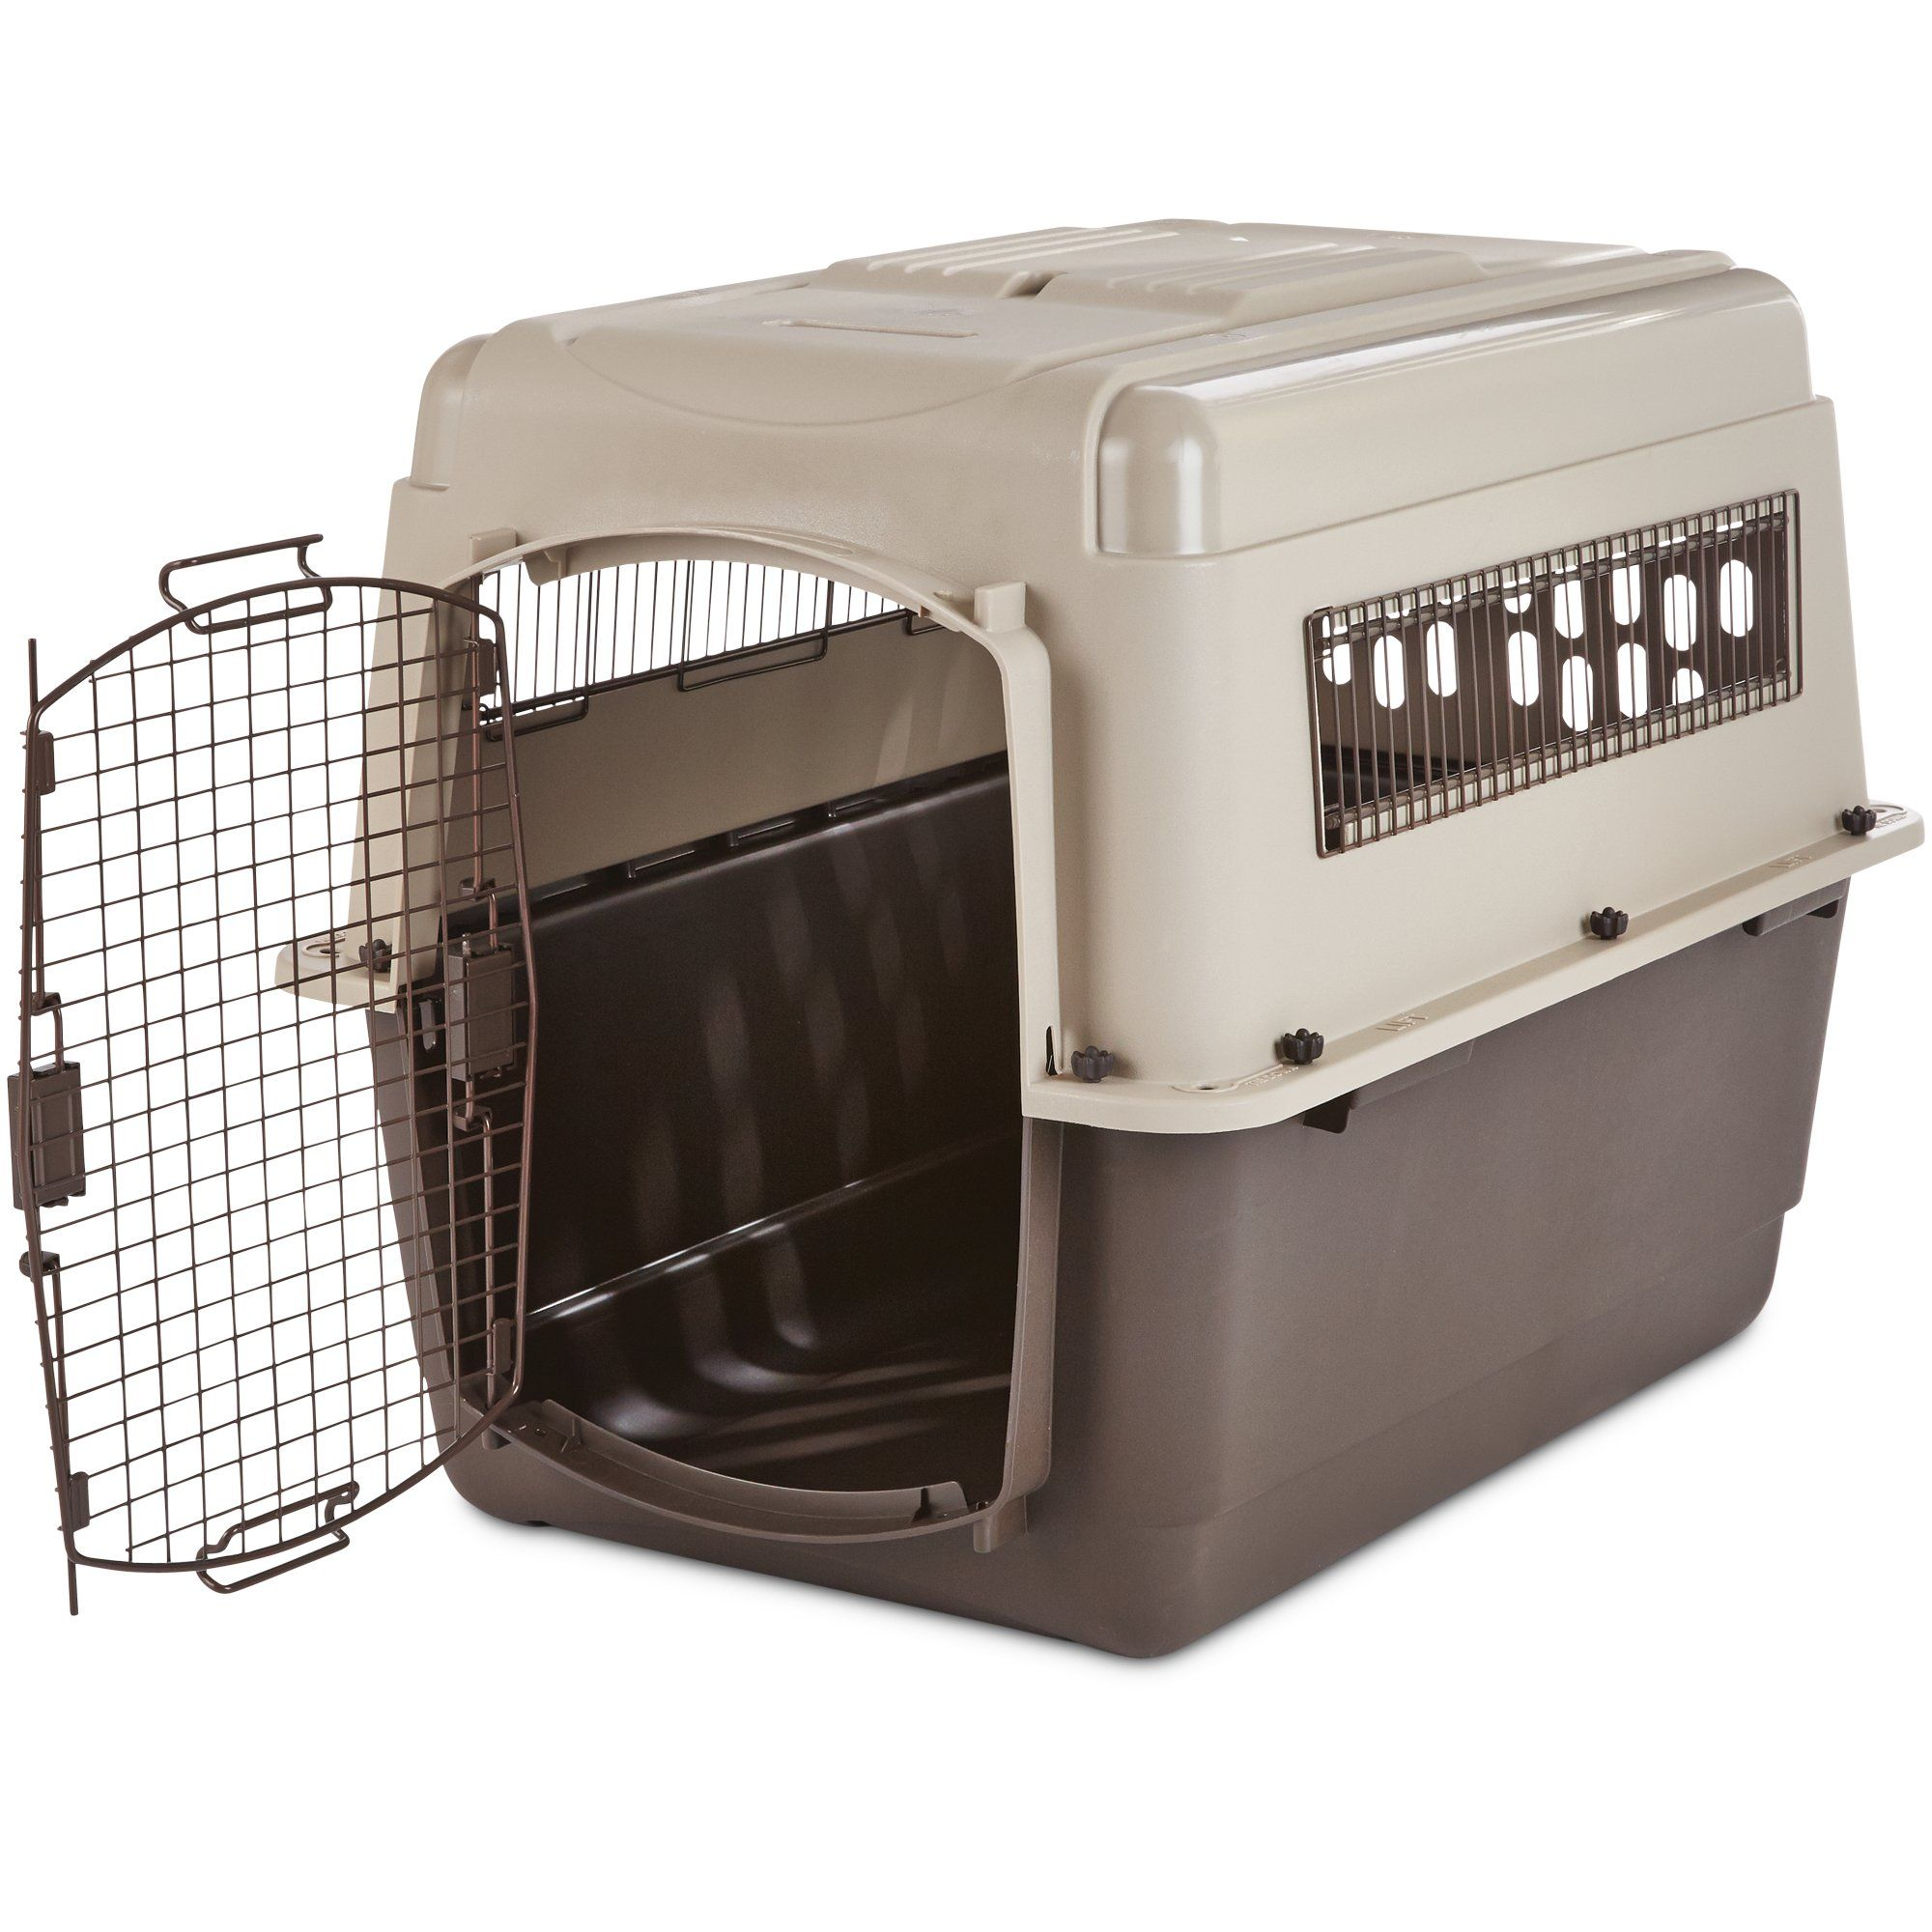 You Me Tan Premium Kennel Take Off On Adventures With Your Favorite Furry Friend In The You Me Premium Kennel This Plastic Dog Kennel Featur Pinteres